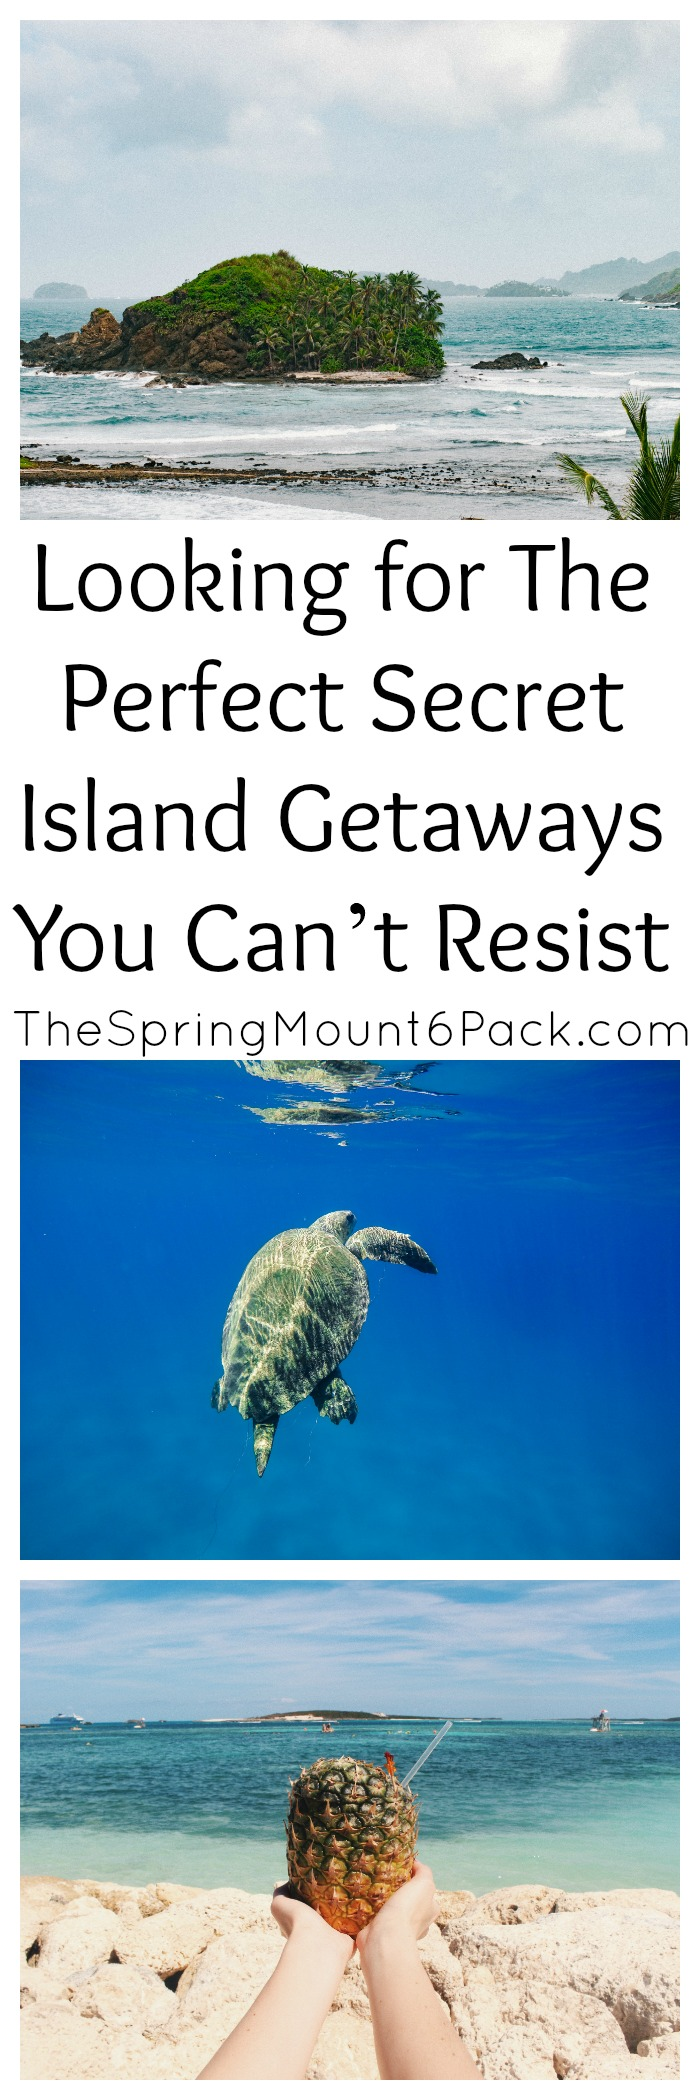 Looking for the perfect island getaway? Check out these Secret Island Getaways You Can't Resist so you can start planning today.